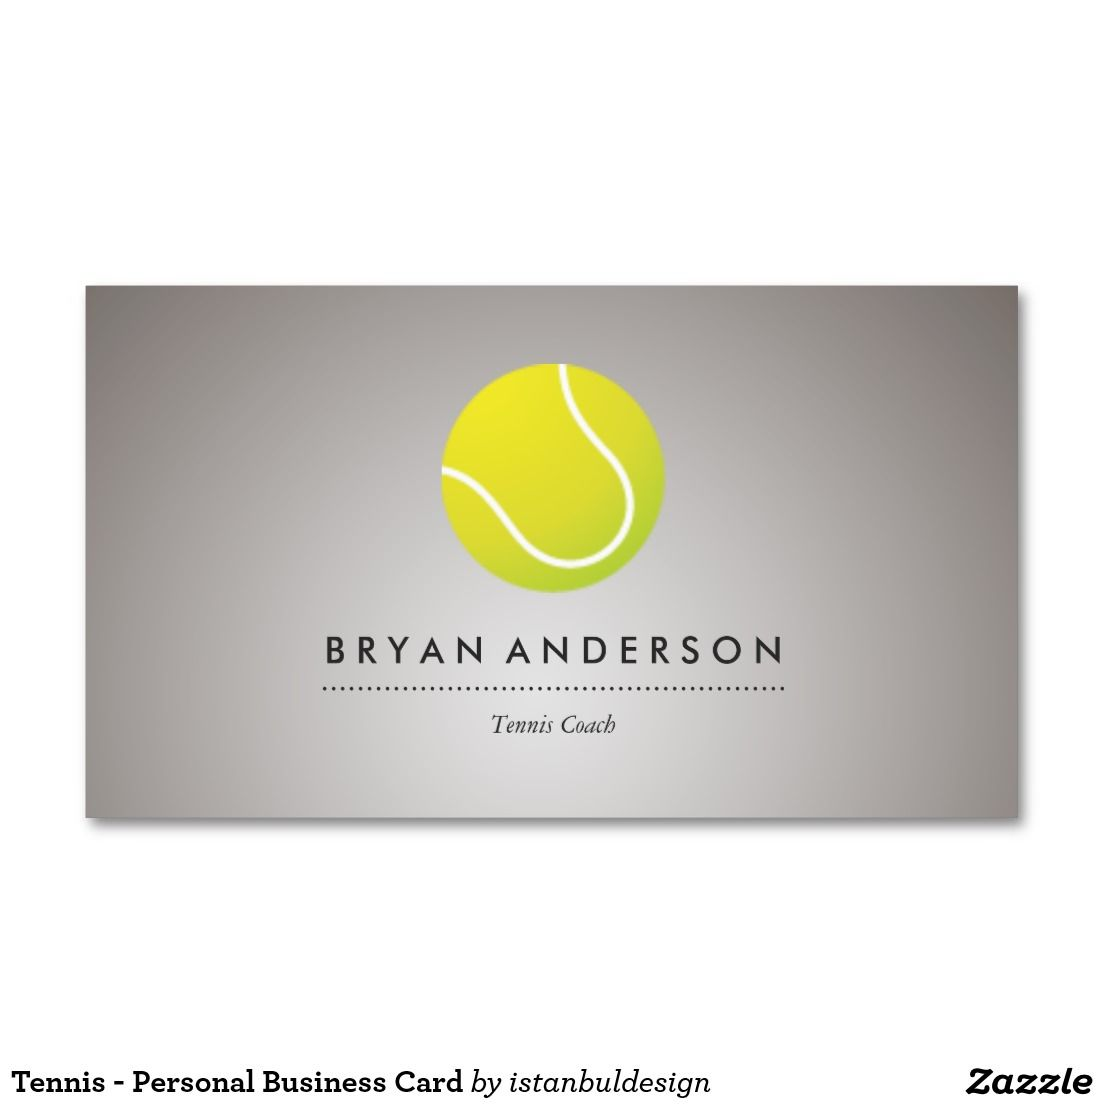 Tennis - Personal Business Card | Business cards and Business